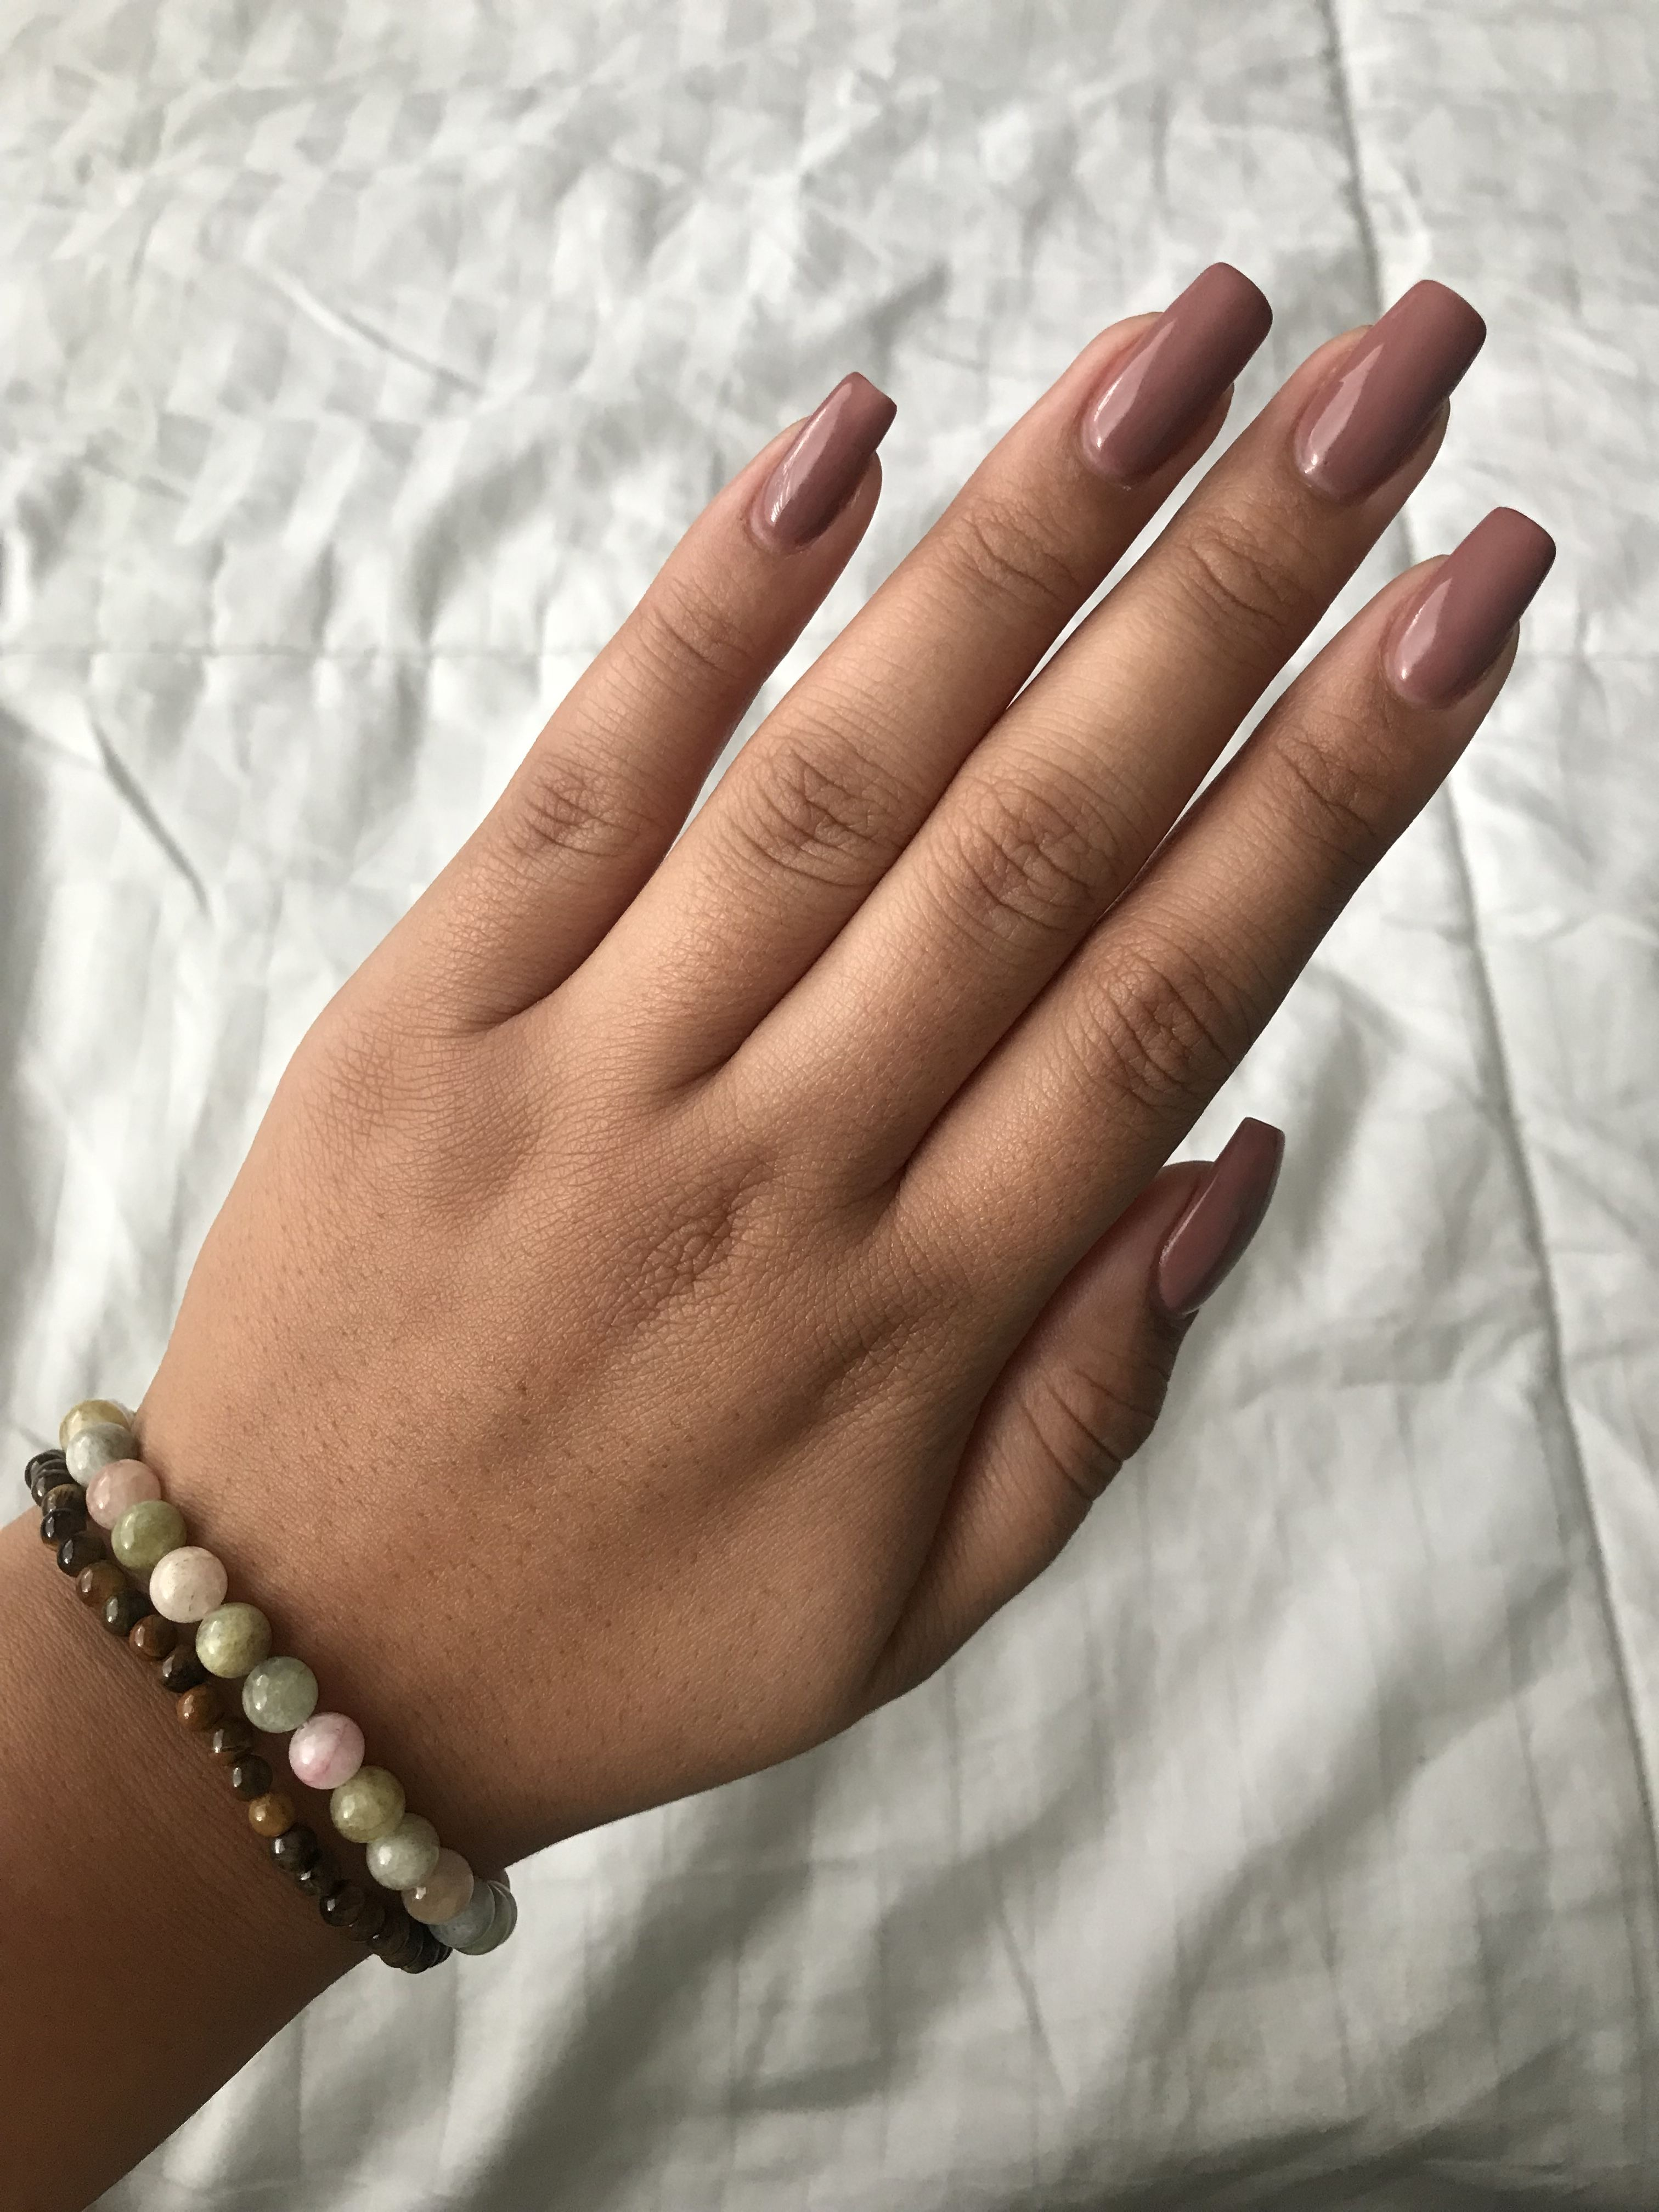 Acrylic nails opi color butternut squash no chip nails